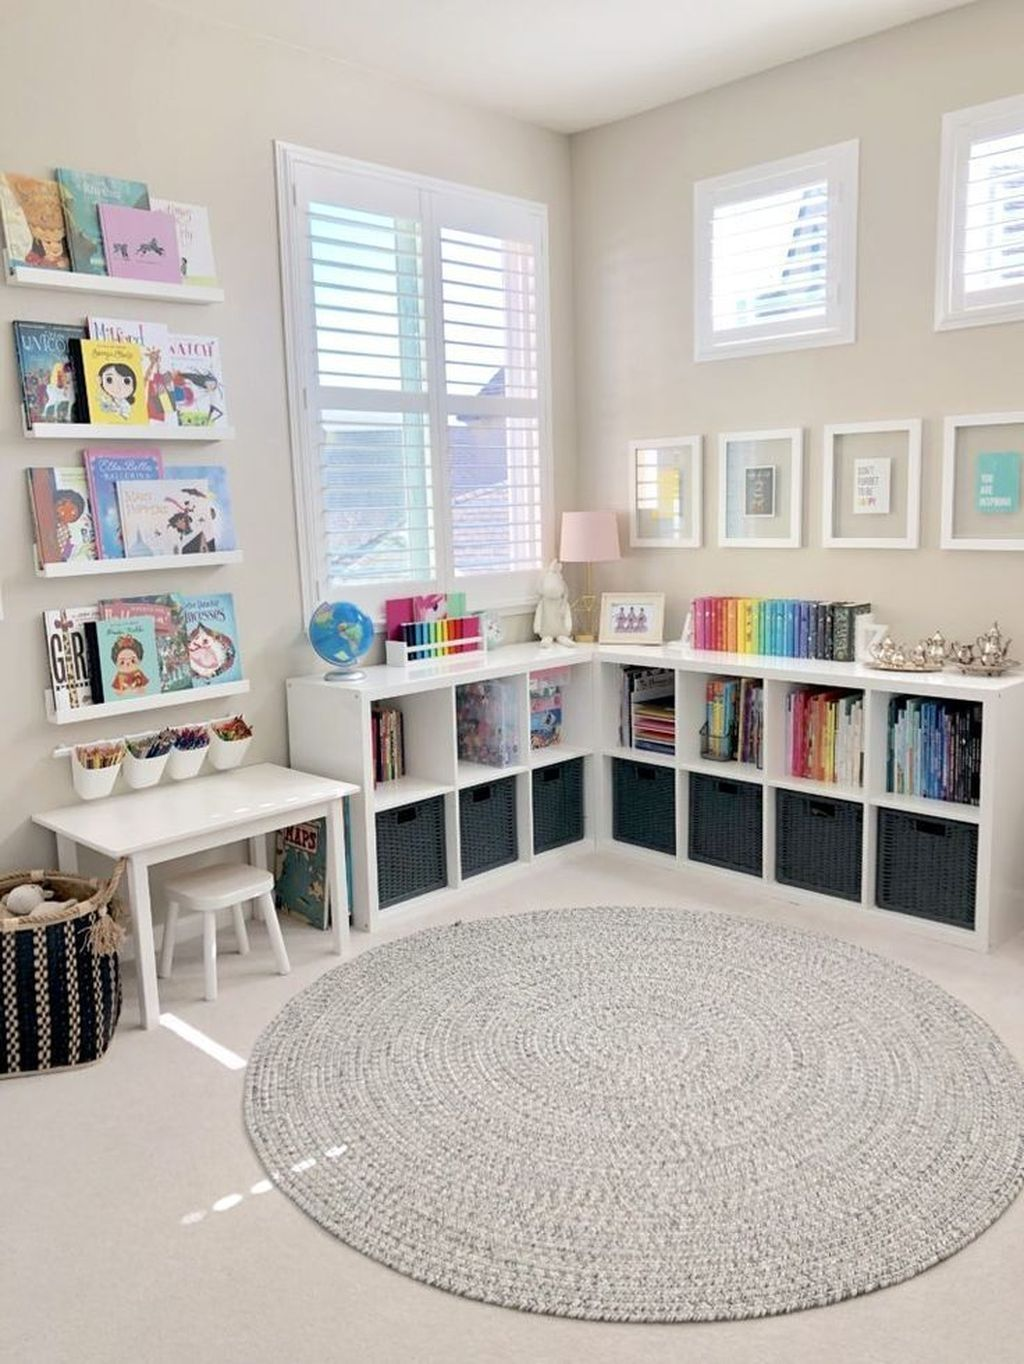 37 Enchanting Kids Play Room Design Ideas On A Budget Kid Room Decor Toddler Playroom Boy Room